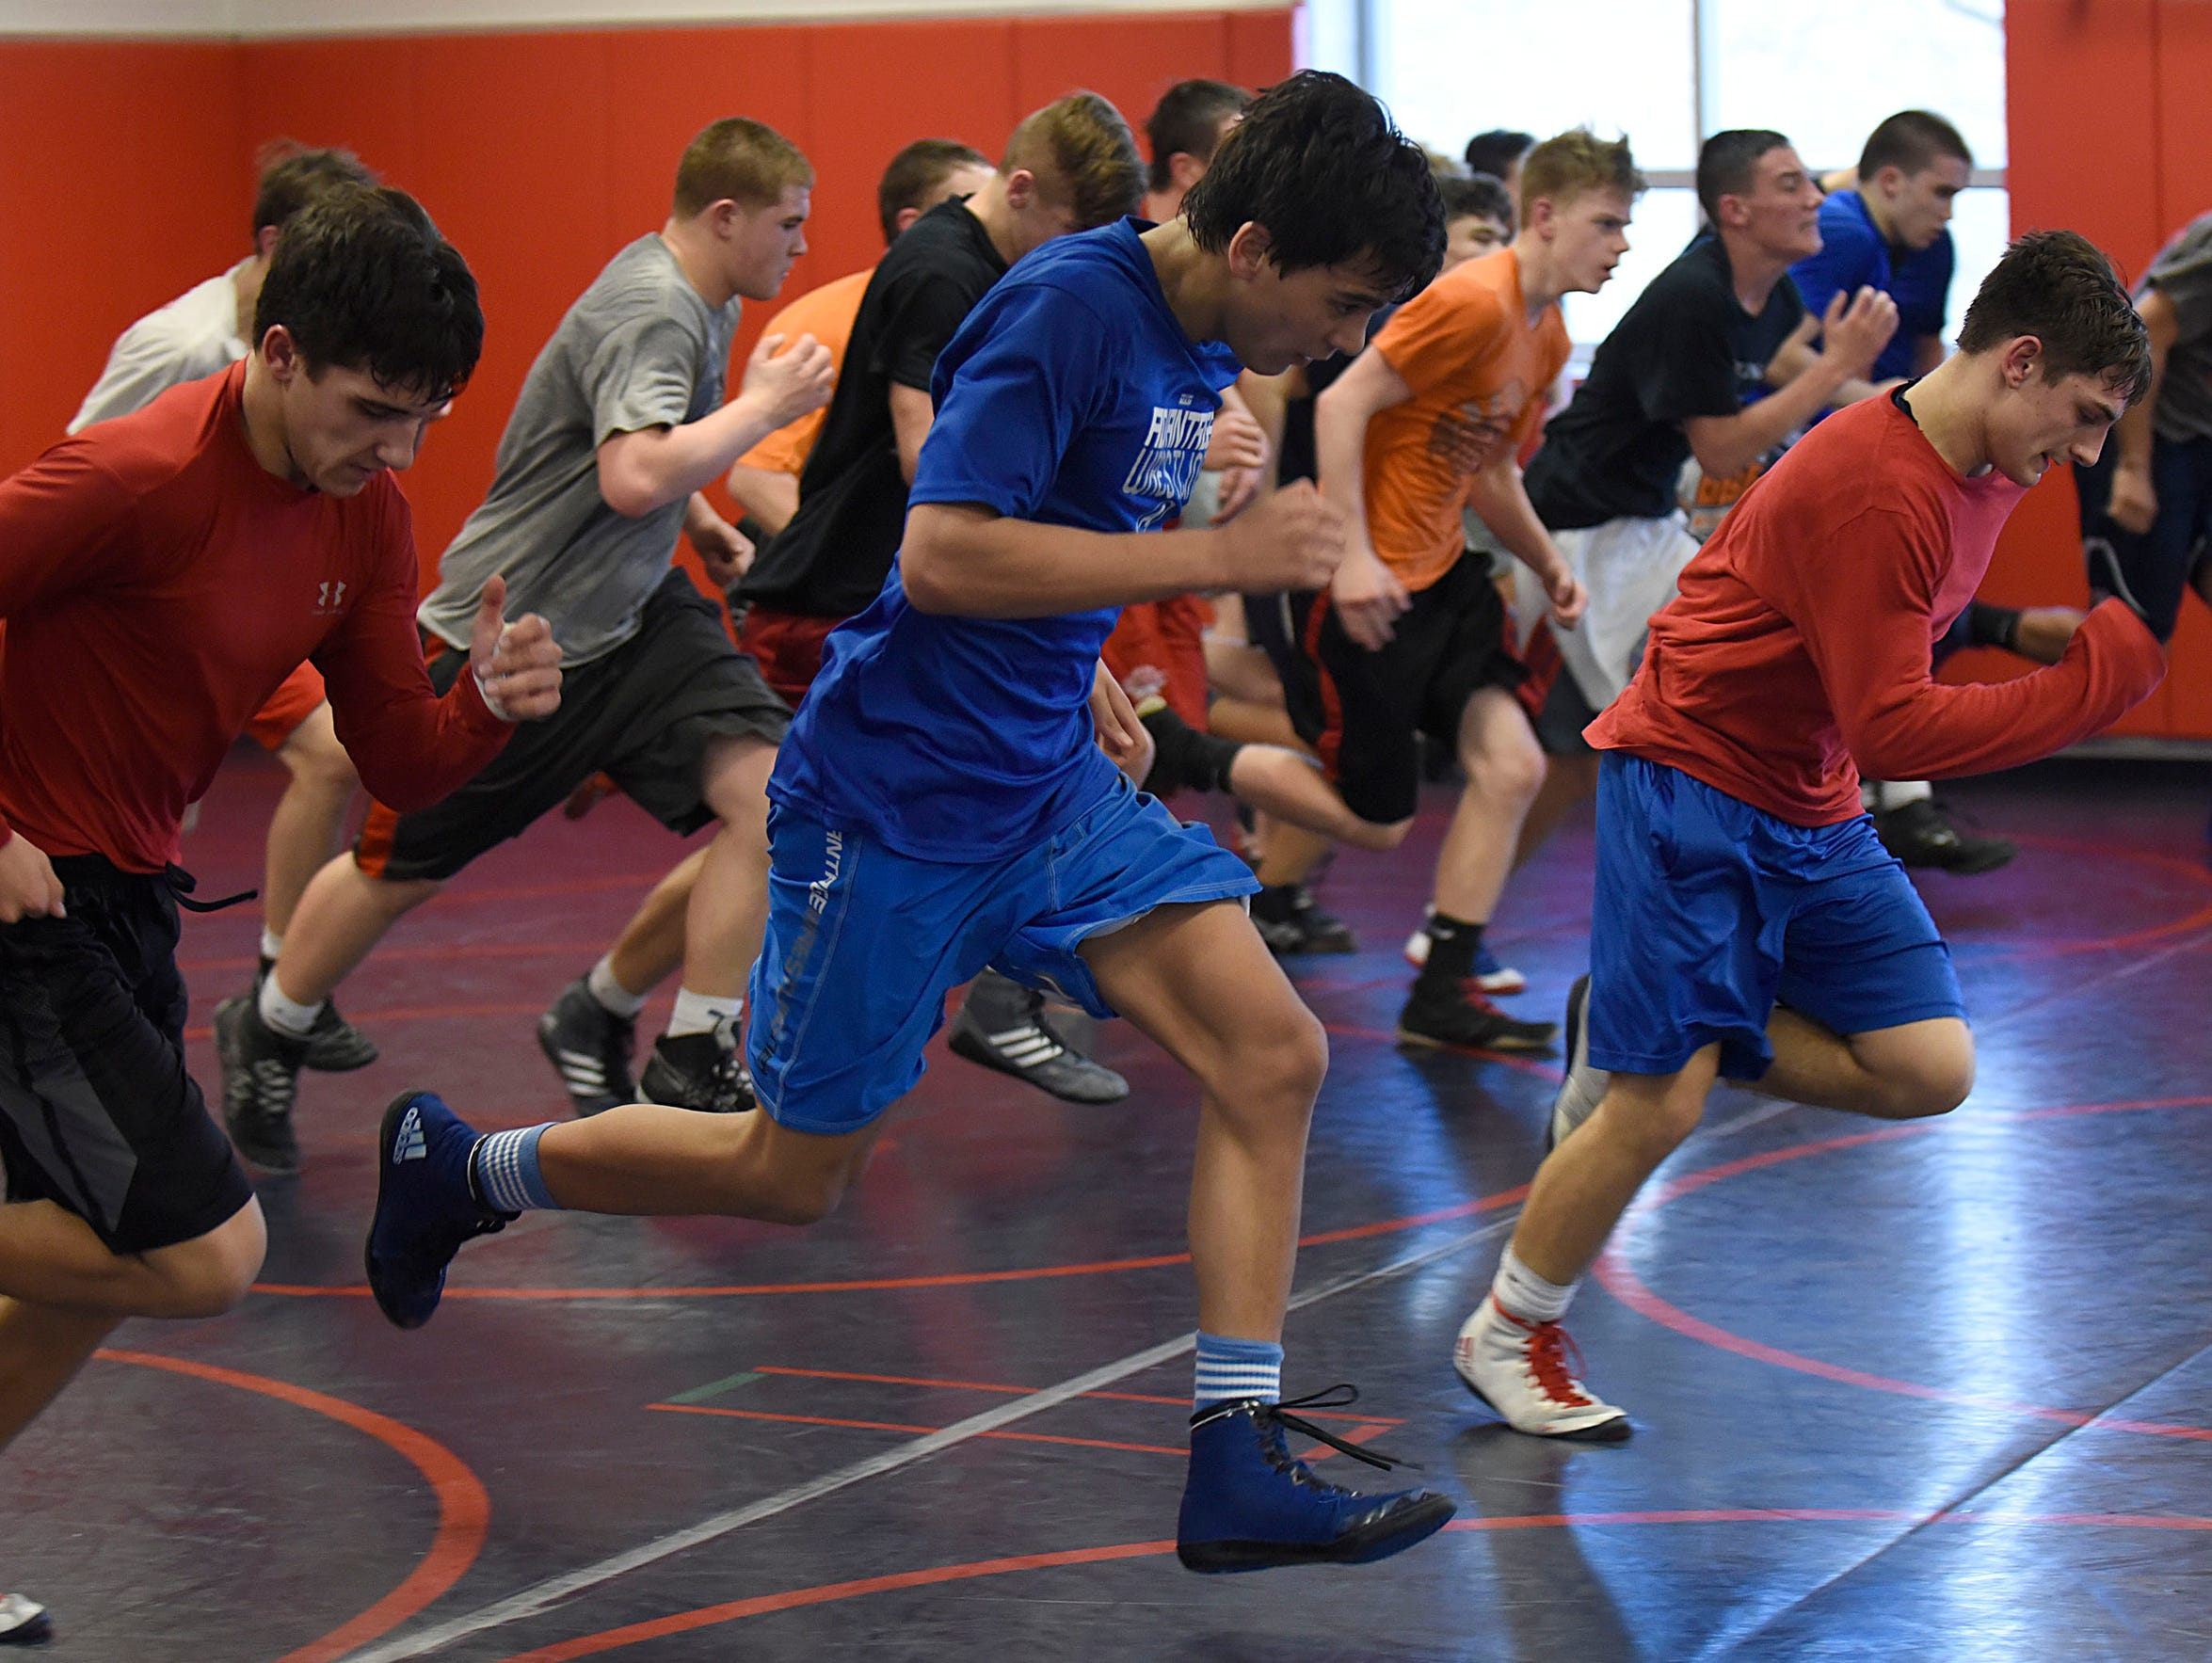 High school wrestlers find out there's much more to